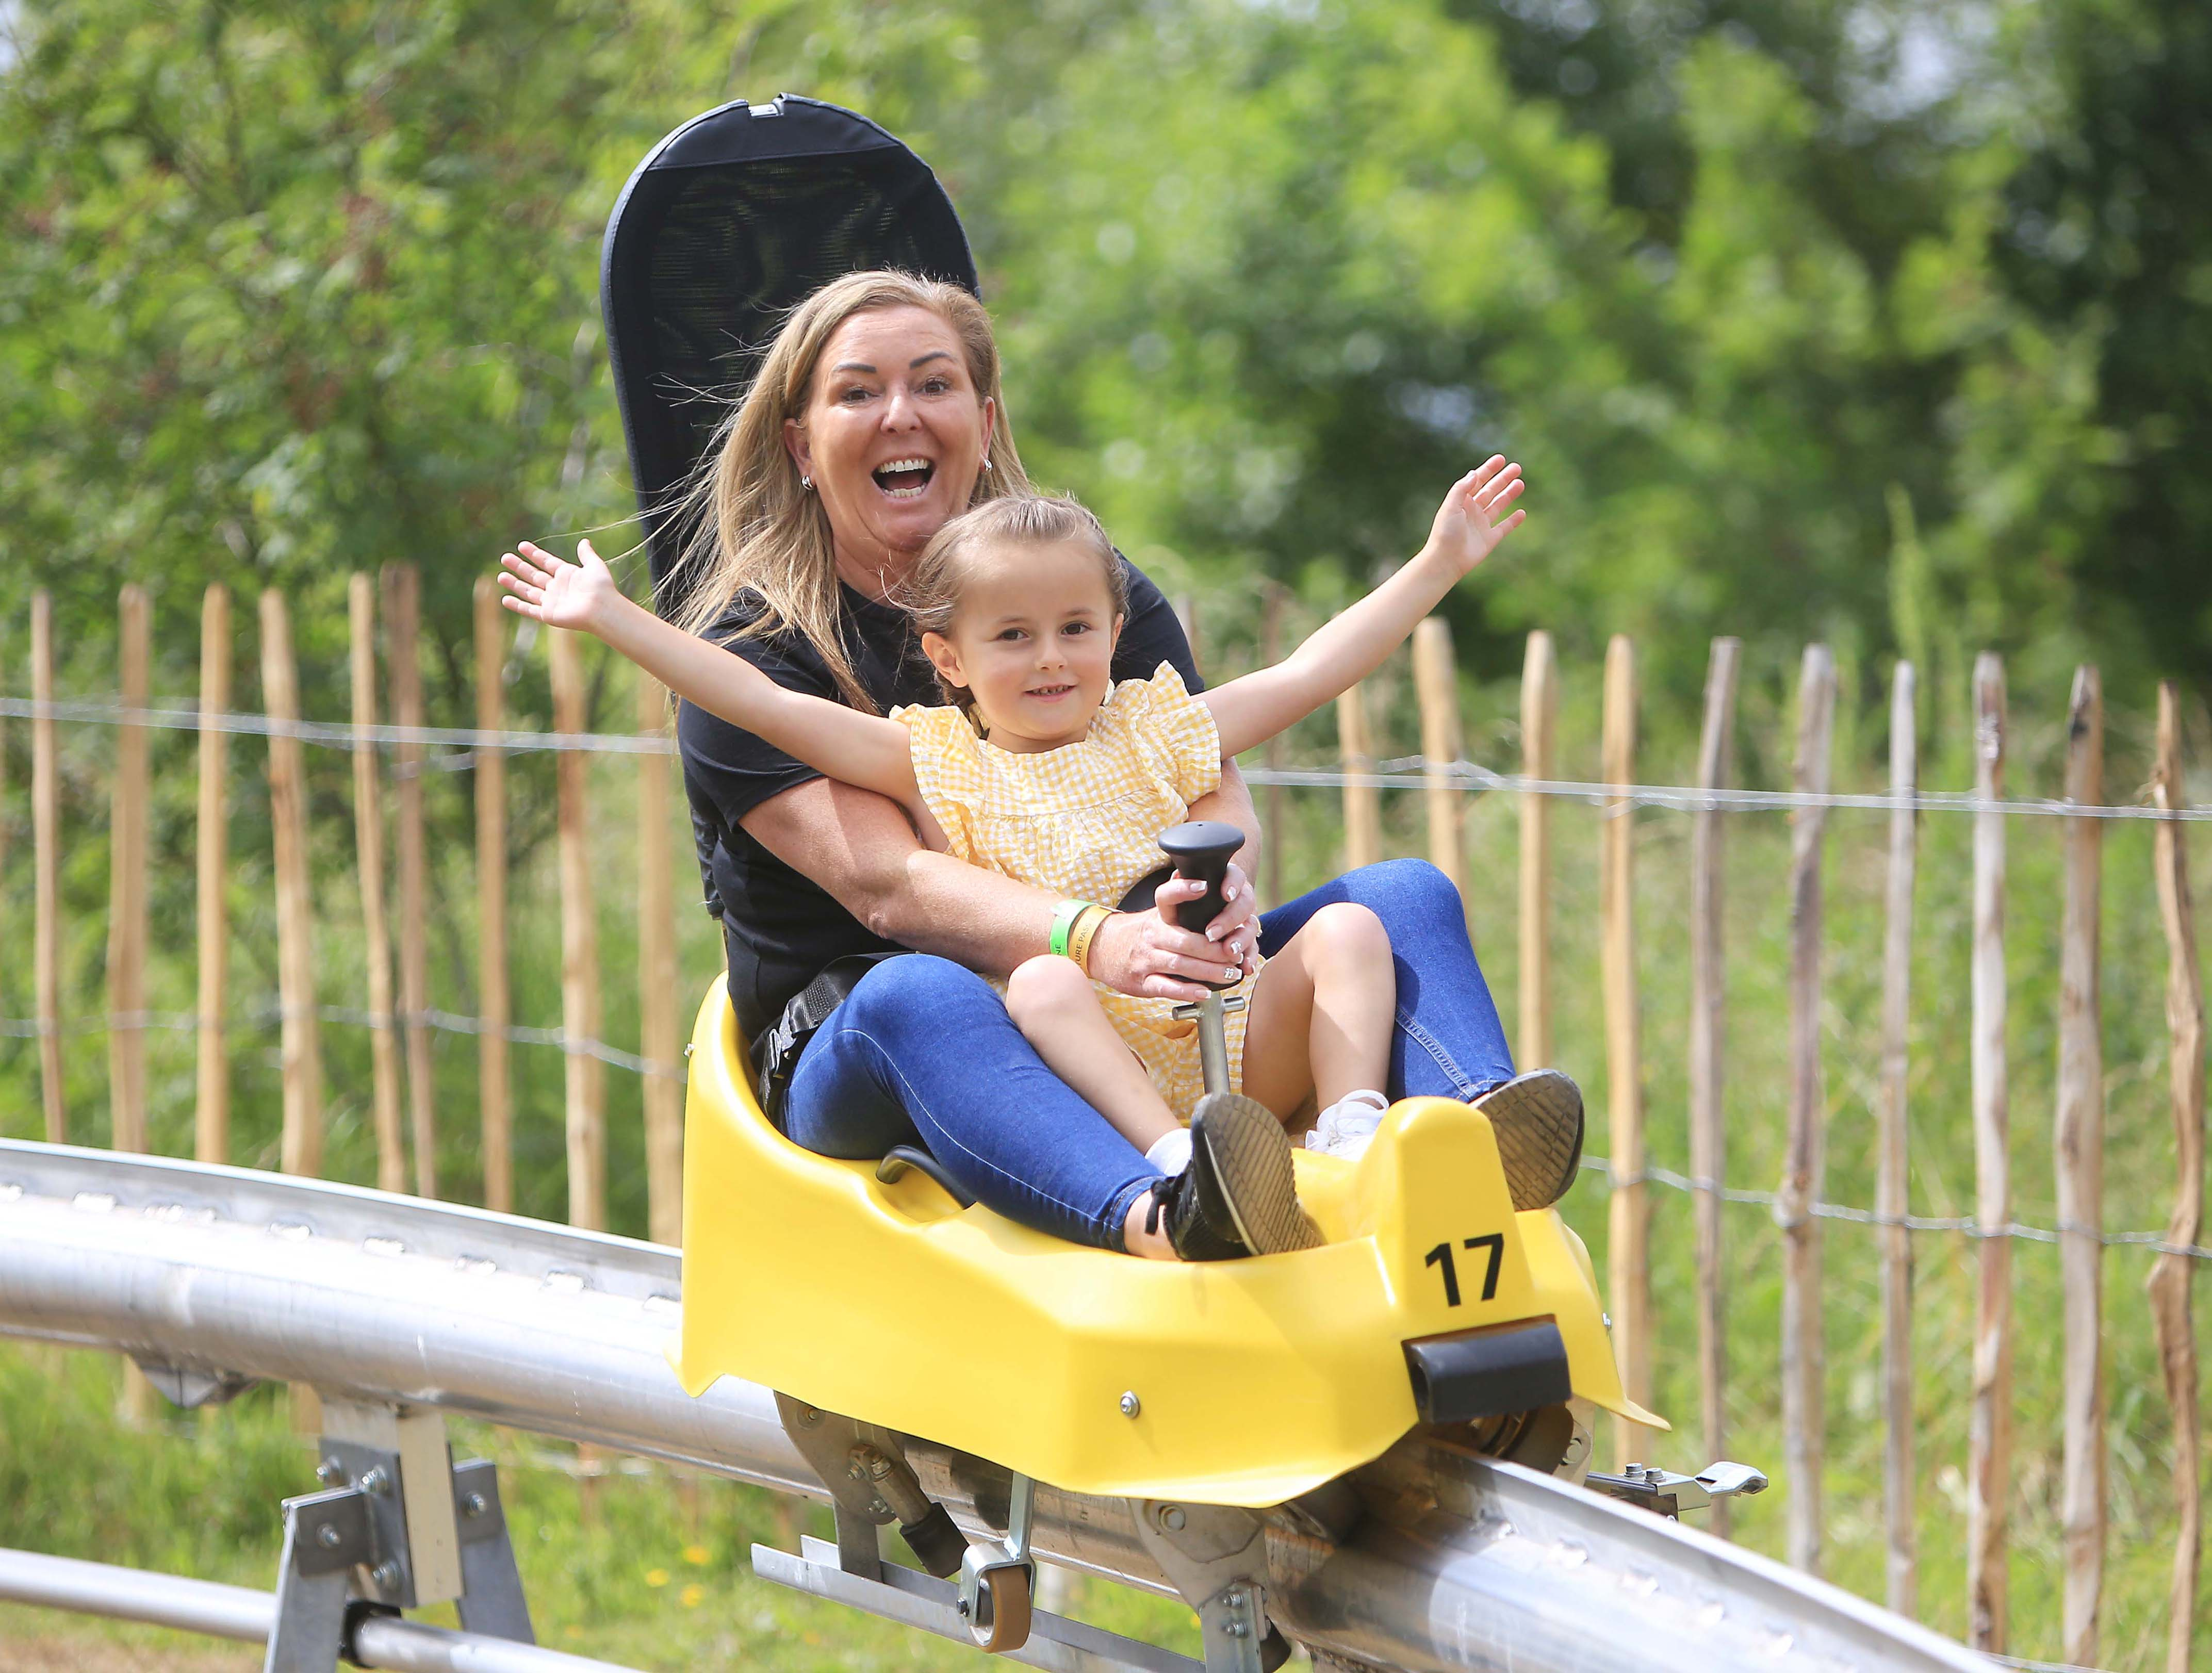 FAMILY FUN: The toboggan and ziplines form part of a £5 million investment in the park